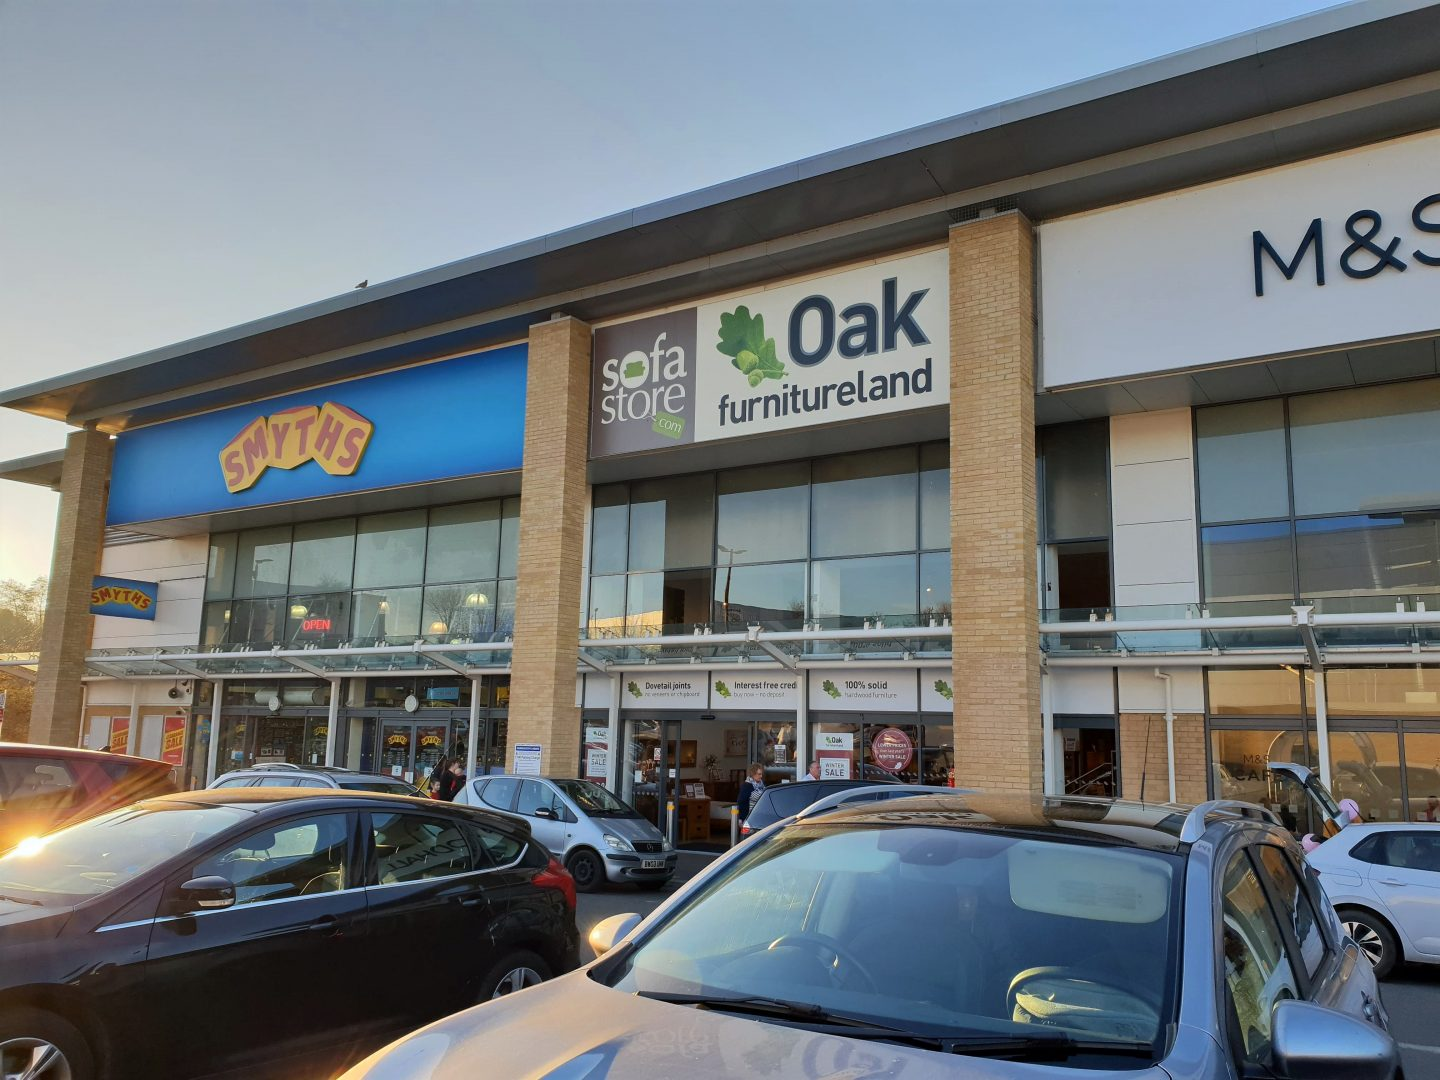 Smyth's Toys, Oak Furniture Land, M&S Food at South Aylesford Retail Park, February 2019